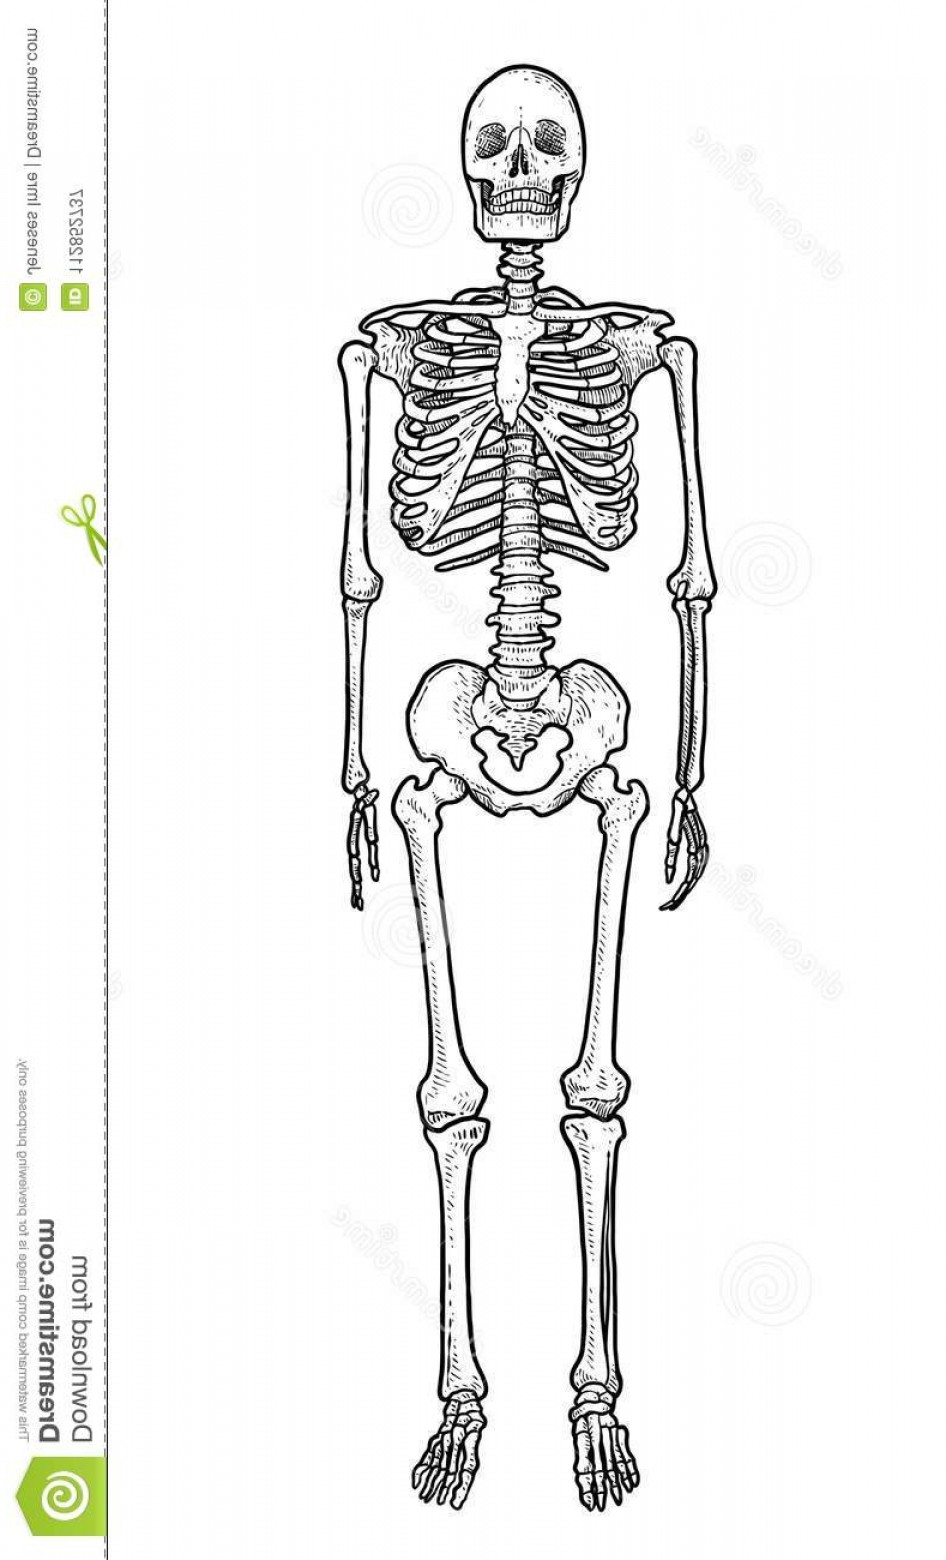 Line Art Human Body Skeleton Labeled Bones Of The Vector: Illustration What Made Ink Pencil Then Was Digitalized Human Skeleton Illustration Drawing Engraving Ink Line Art Vector Image